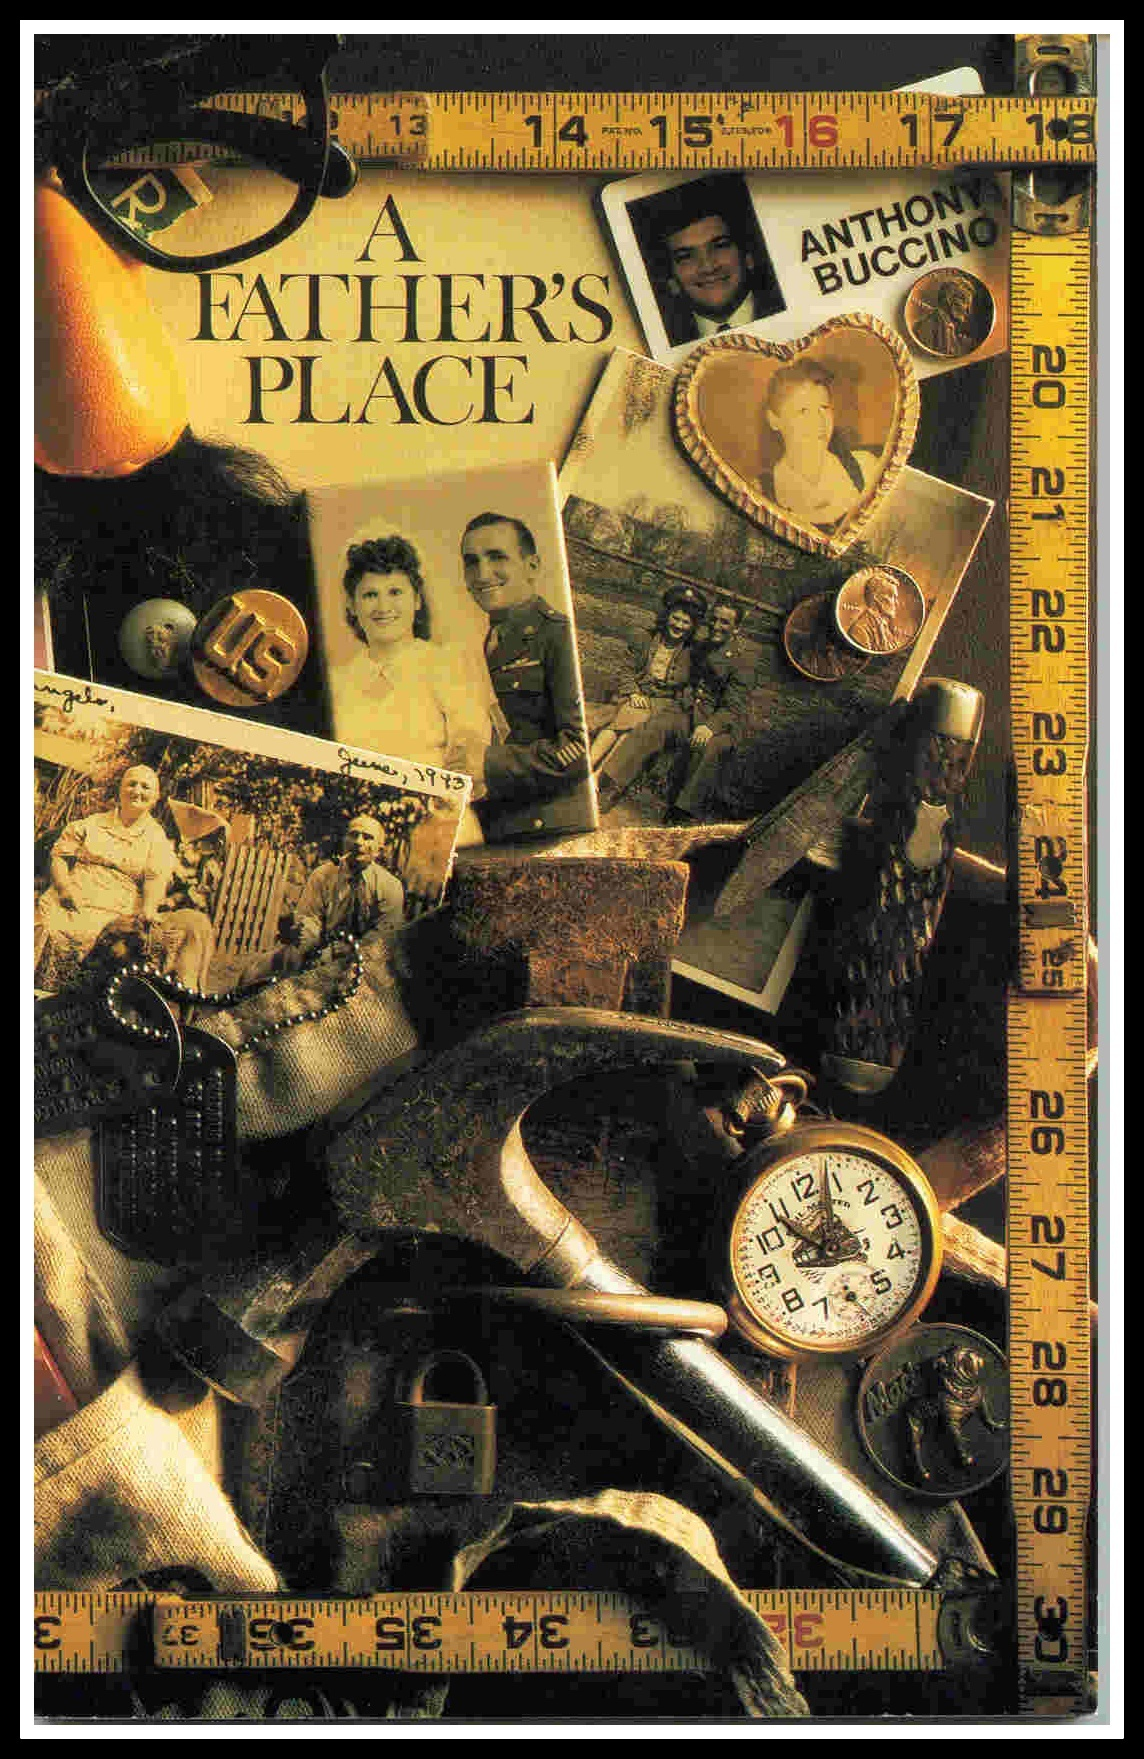 A Father's Place: An Eclectic Collection by Anthony Buccino